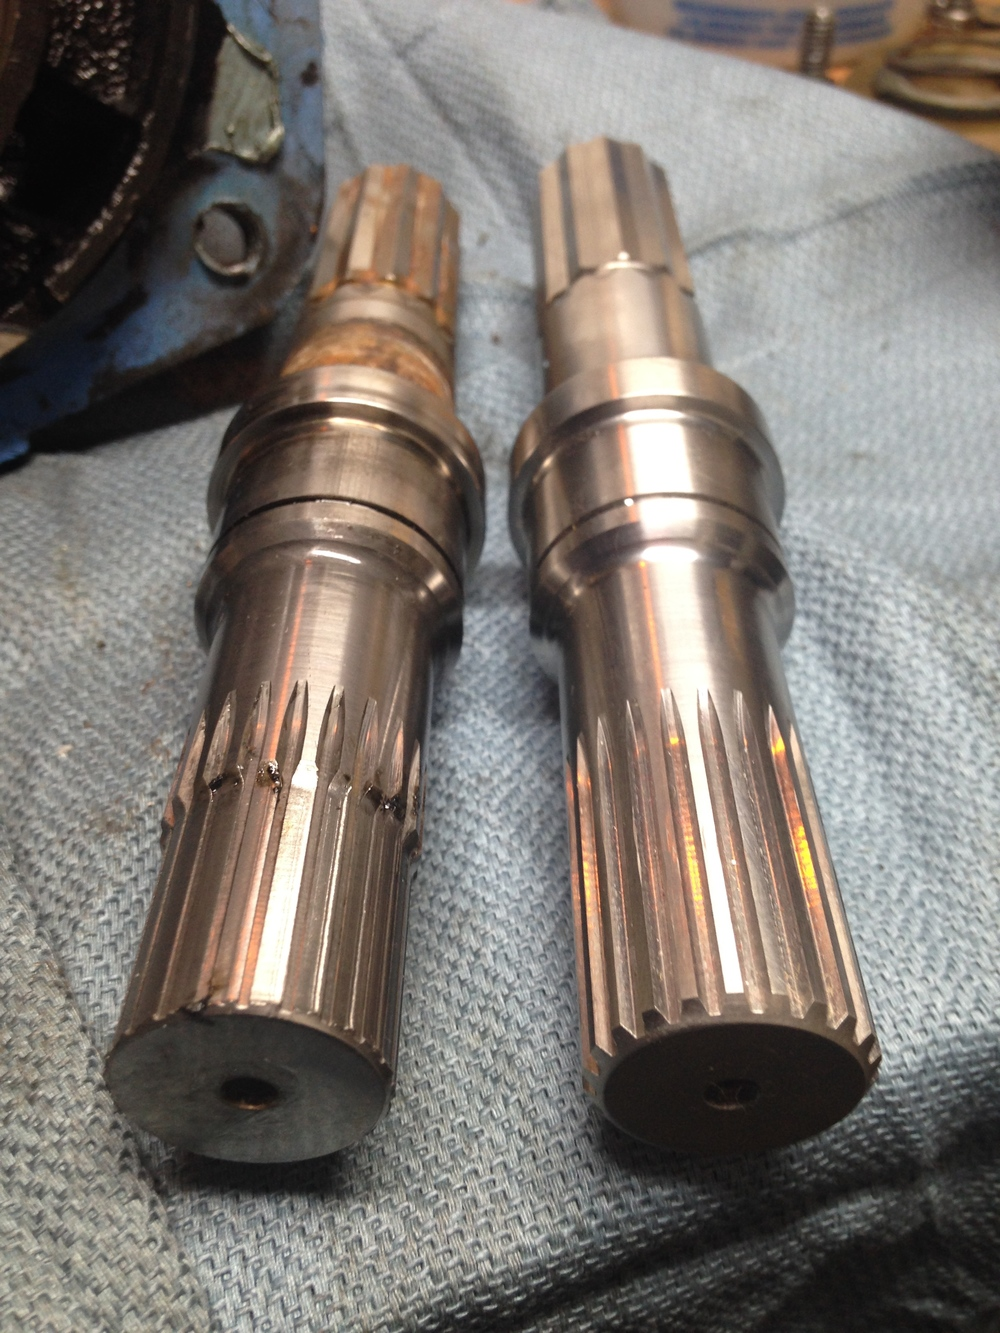 Raw water pump drive shafts, bad and new.  Note how worn the teeth are on the one on the left.  This is not good.